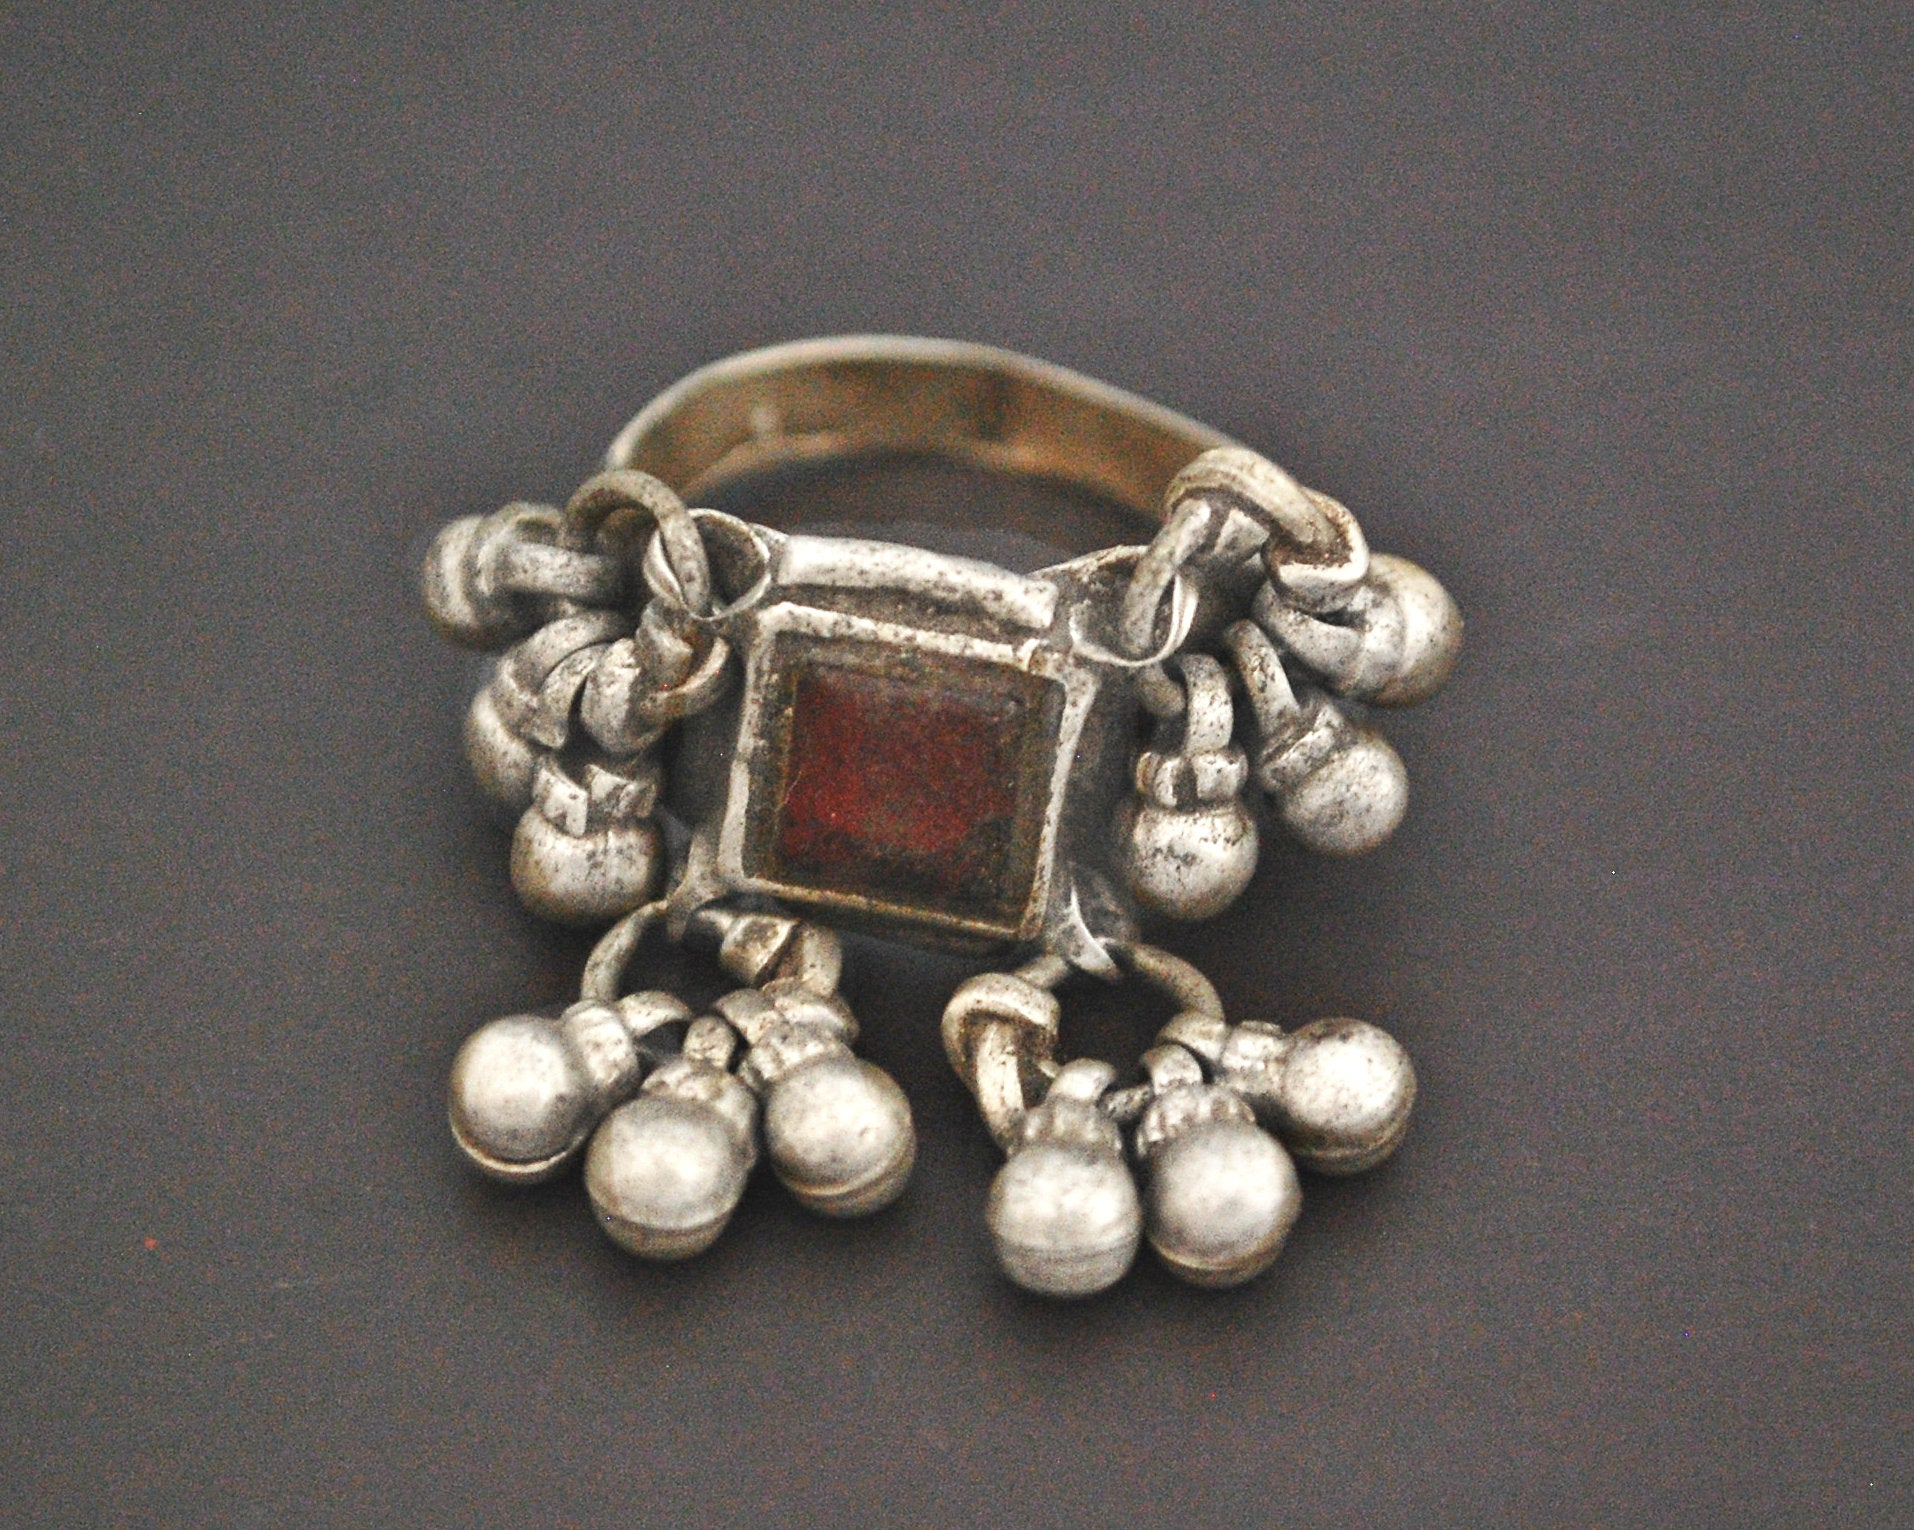 Old Rajasthani Silver Ring with Bells - Size 8